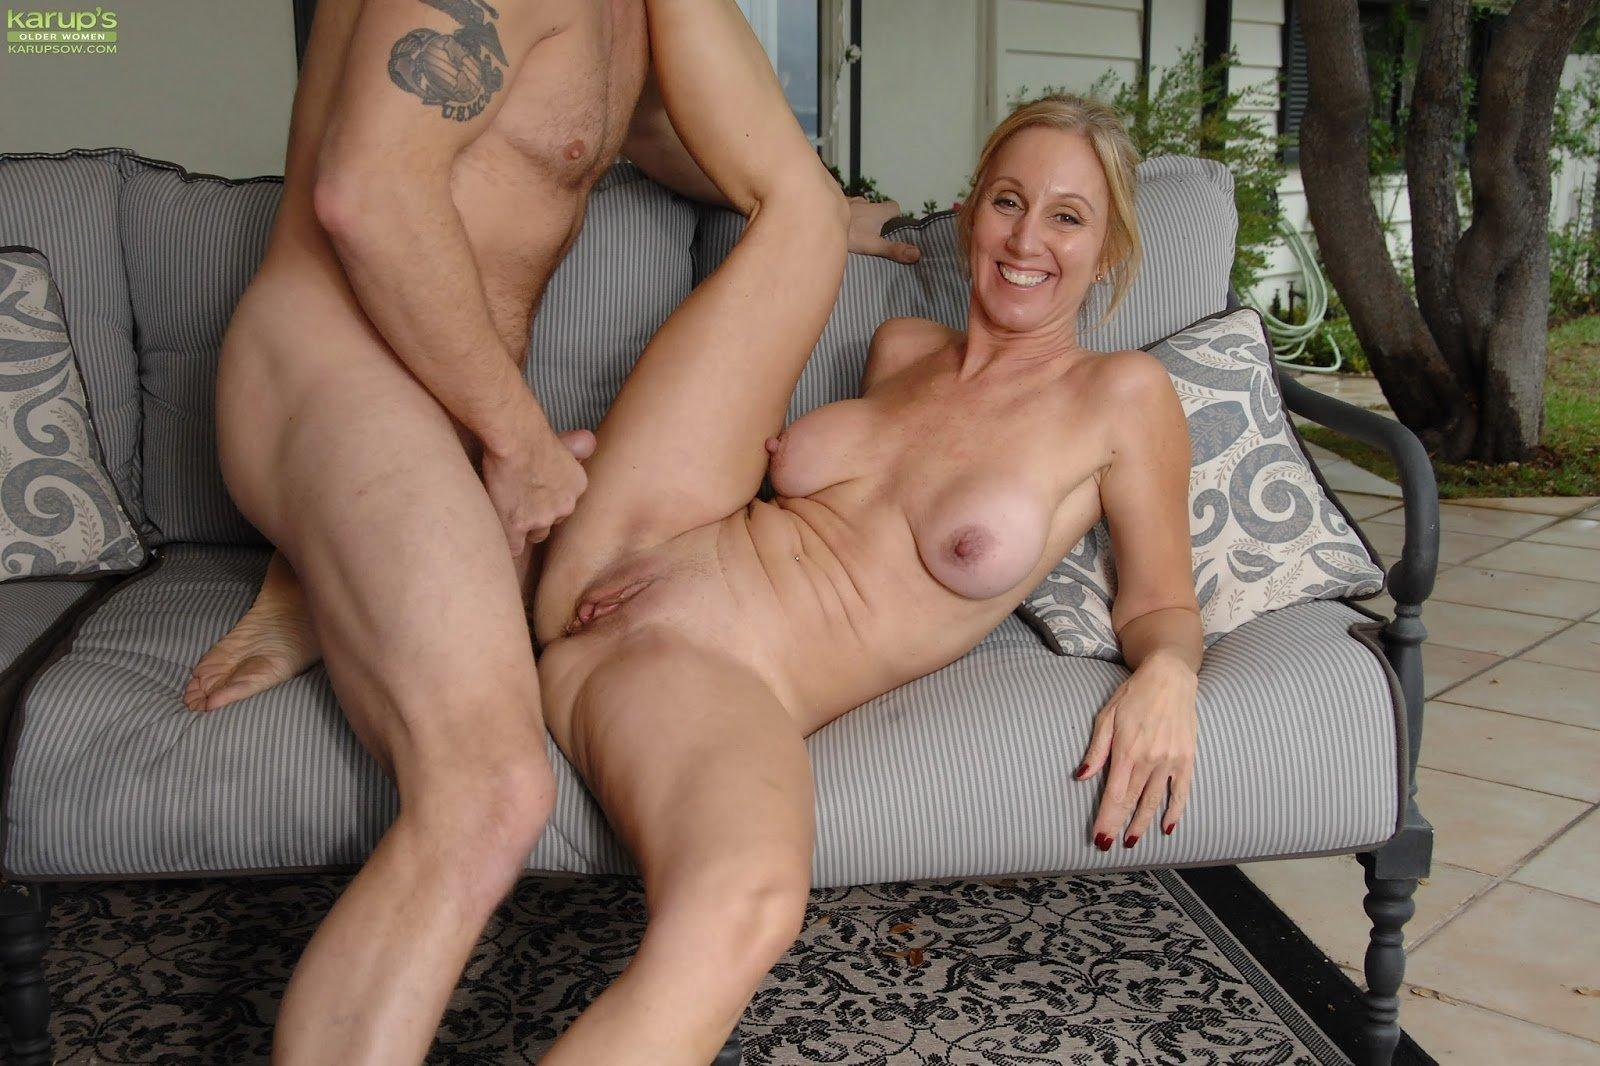 Very valuable older female porn stars remarkable, this